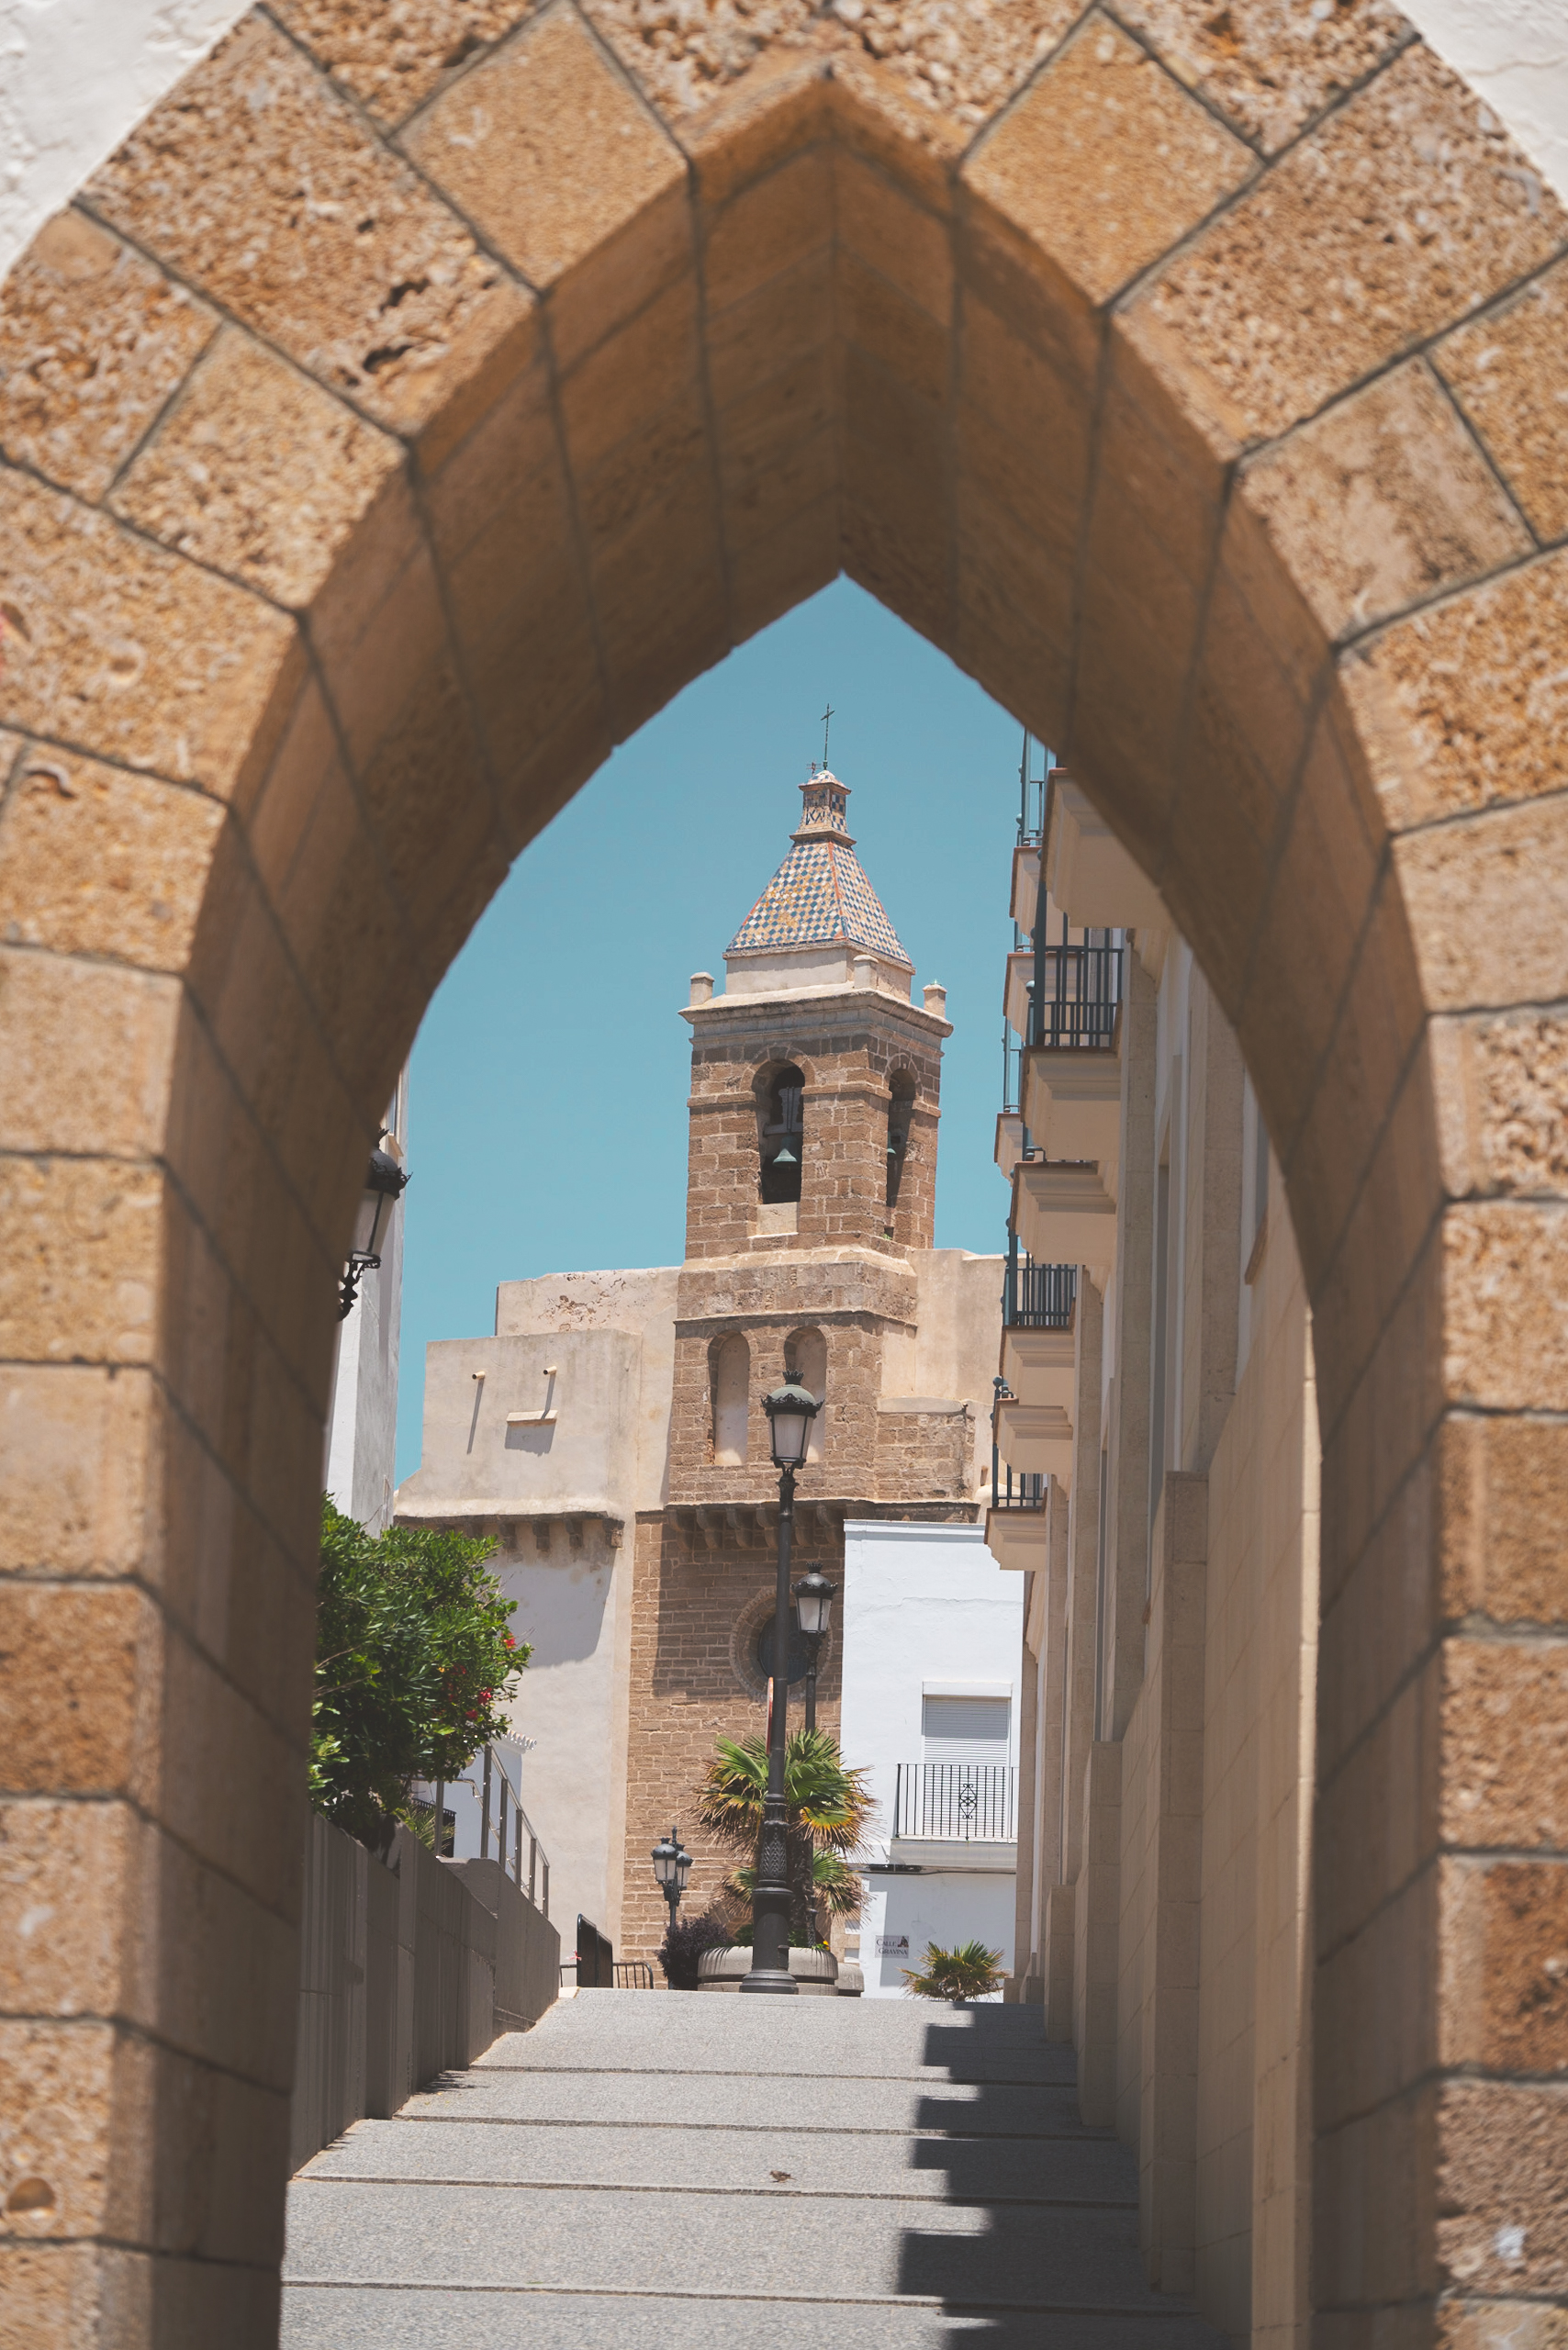 Arch leading into town - Rota, Spain